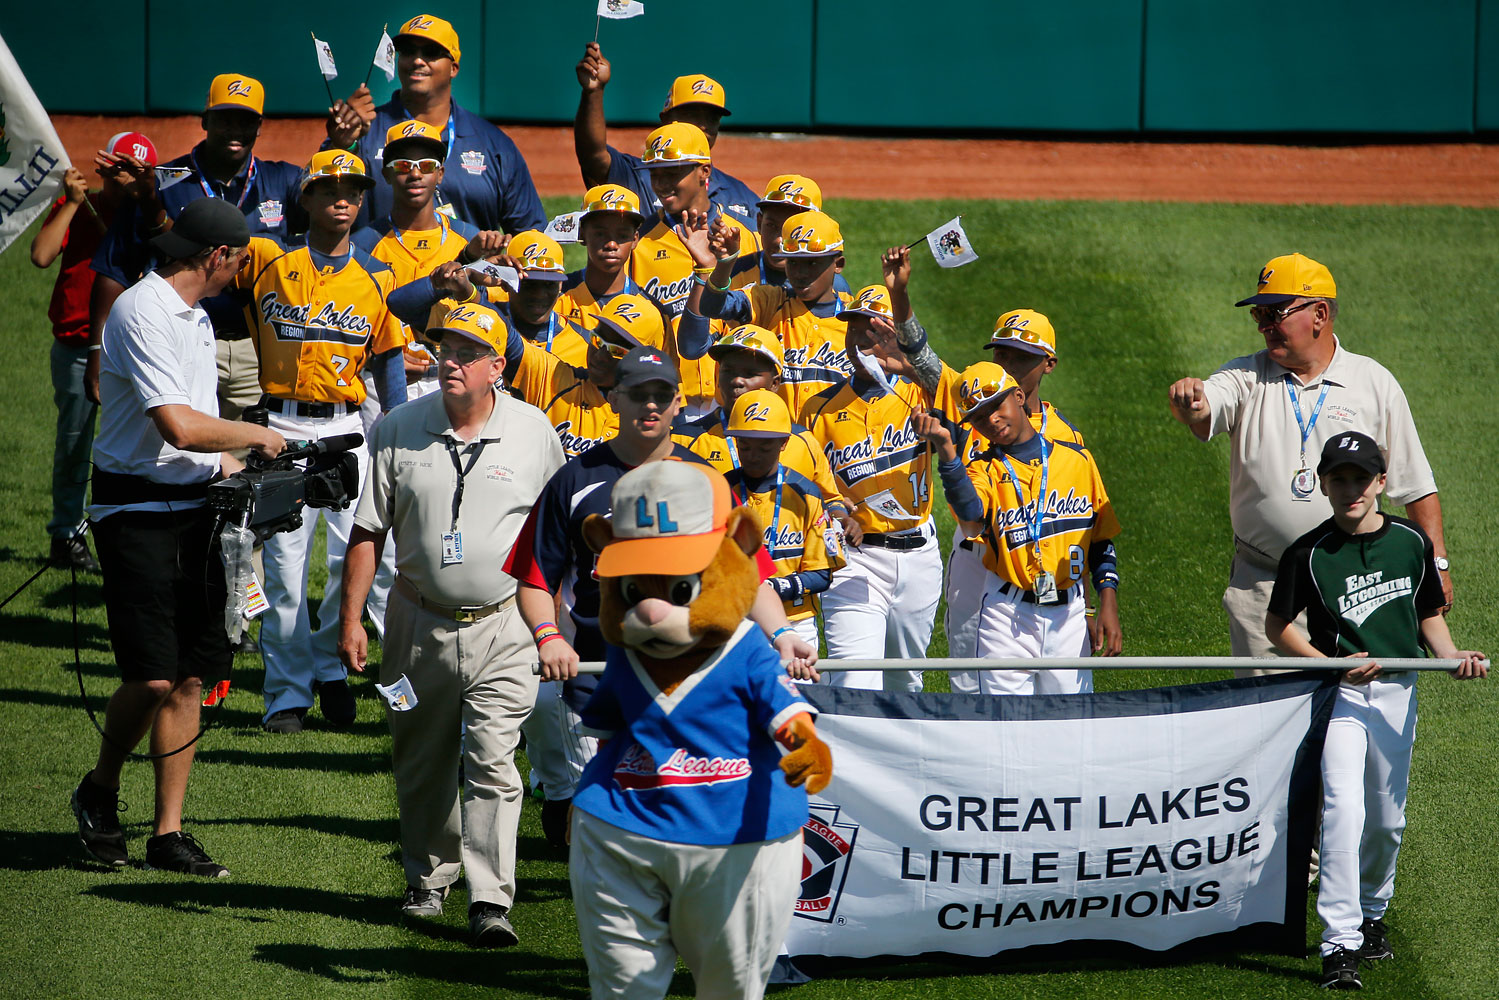 The Jackie Robinson West Little League baseball team from Chicago participates in the opening ceremony of the 2014 Little League World Series tournament in South Williamsport, Pa., Aug. 14, 2014.